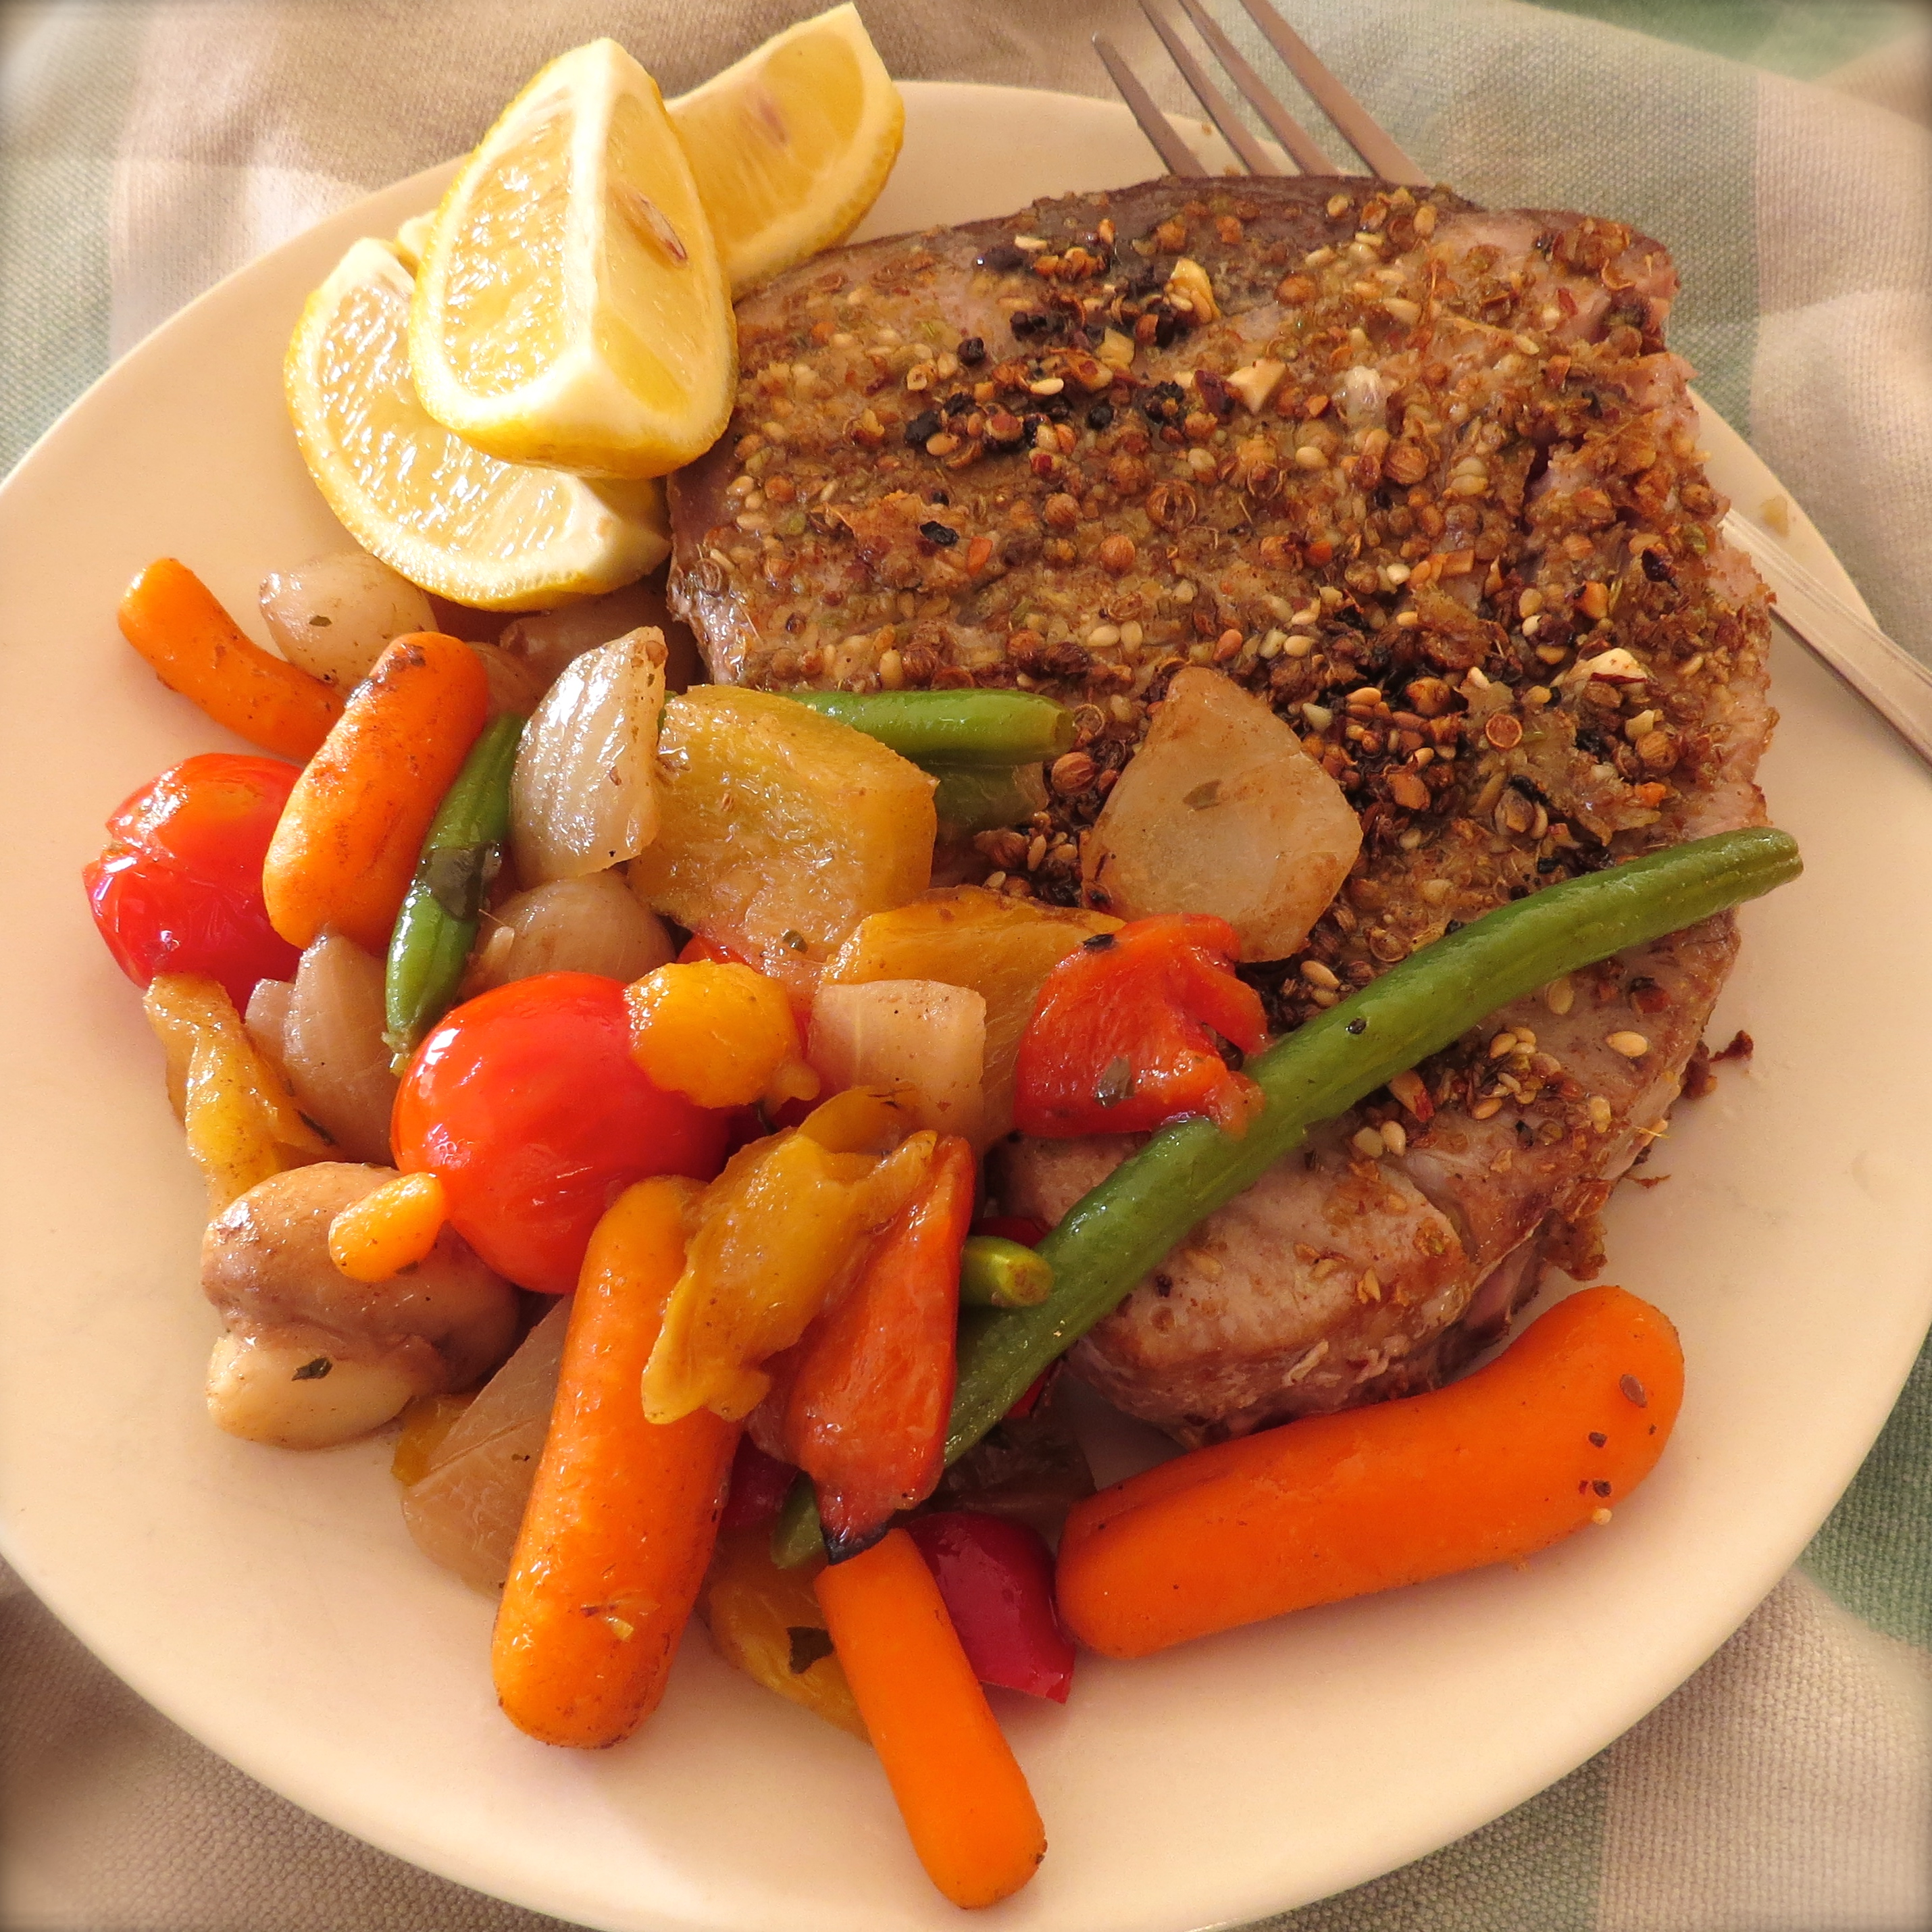 Spice-crusted Tuna with lemon wedges and Roasted Vegetables